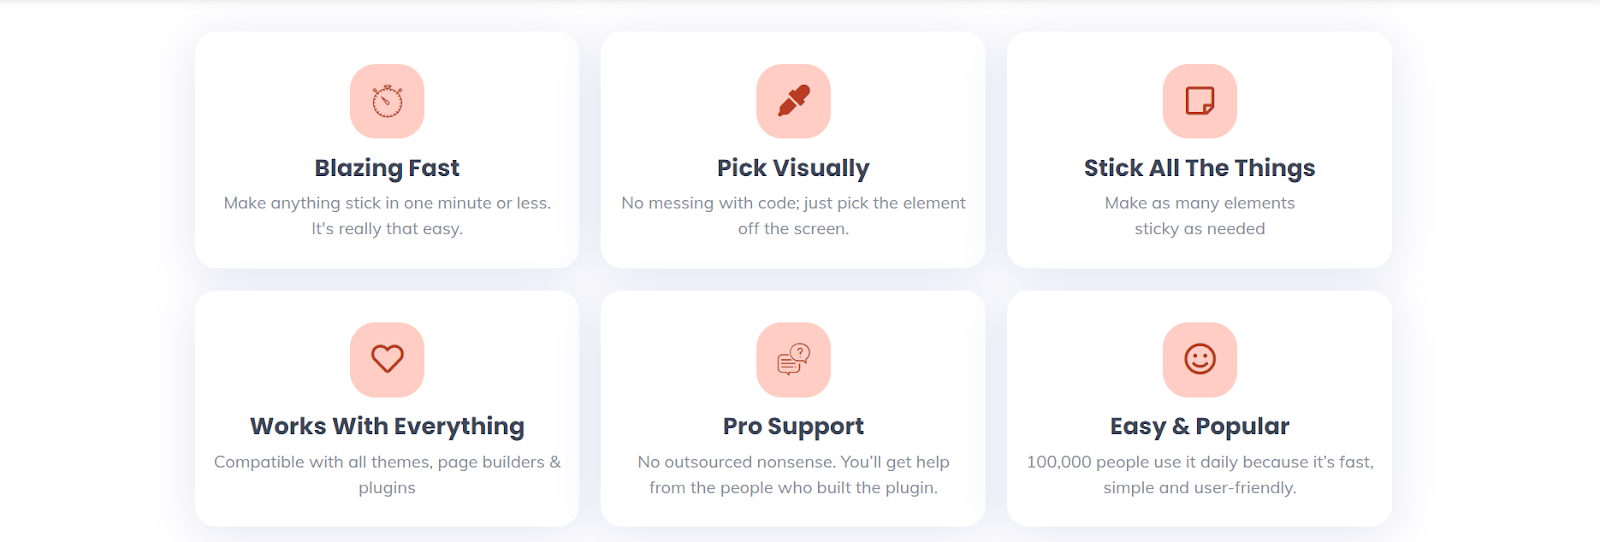 wp sticky- features- 7